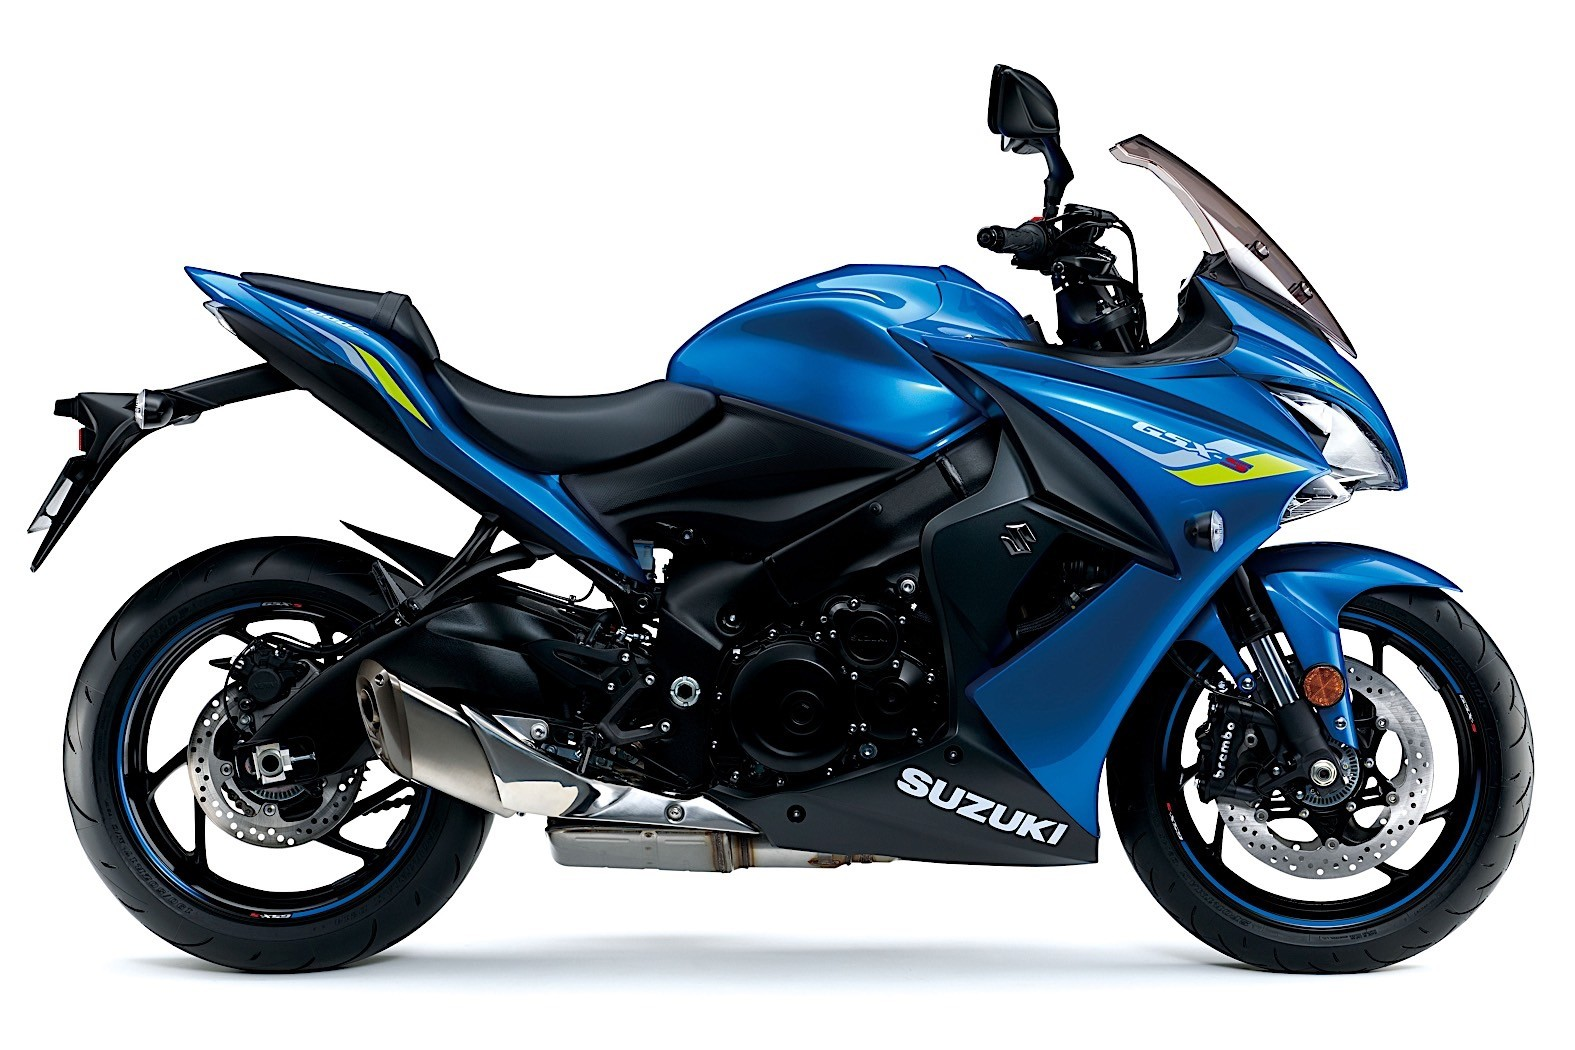 2019-suzuki-motorcycles-shine-in-new-colors-at-the-motorcycle-live-27